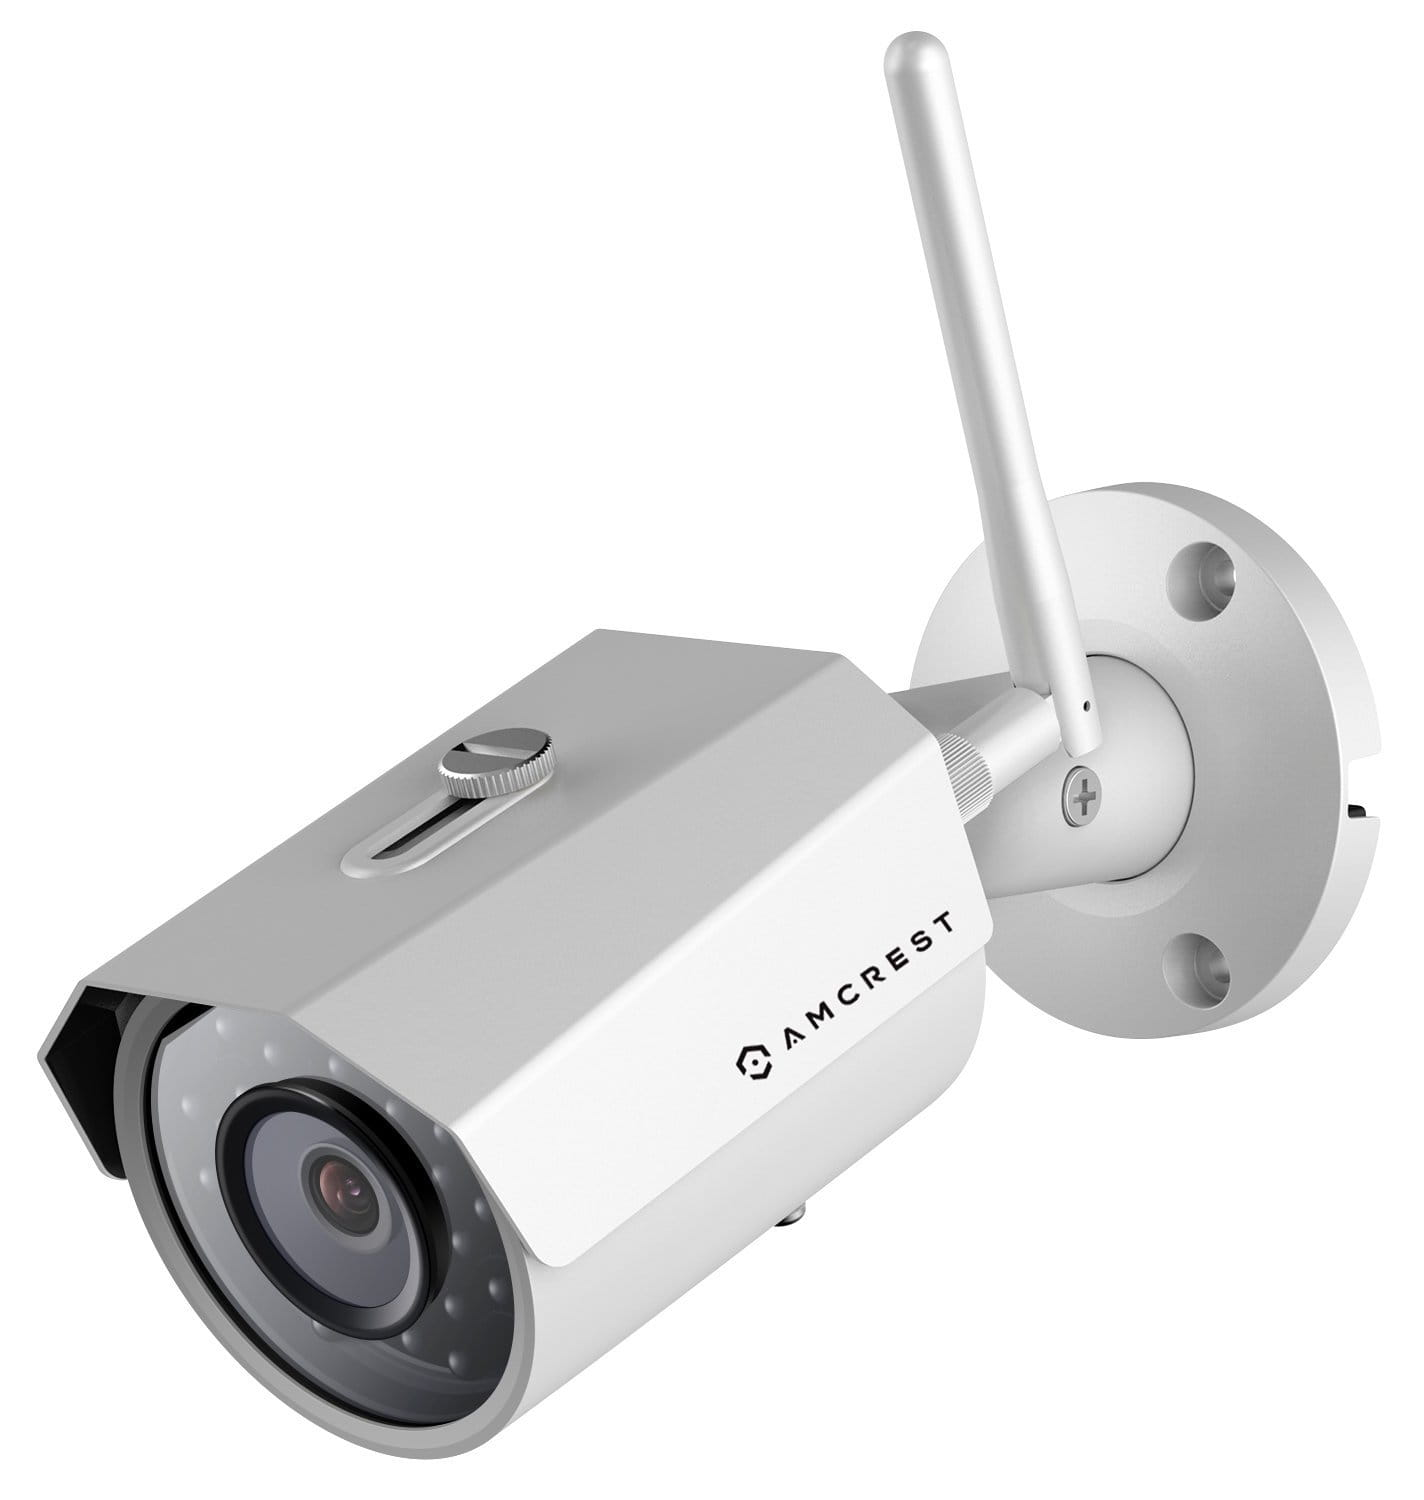 Best Outdoor Security Cameras | SafeWise